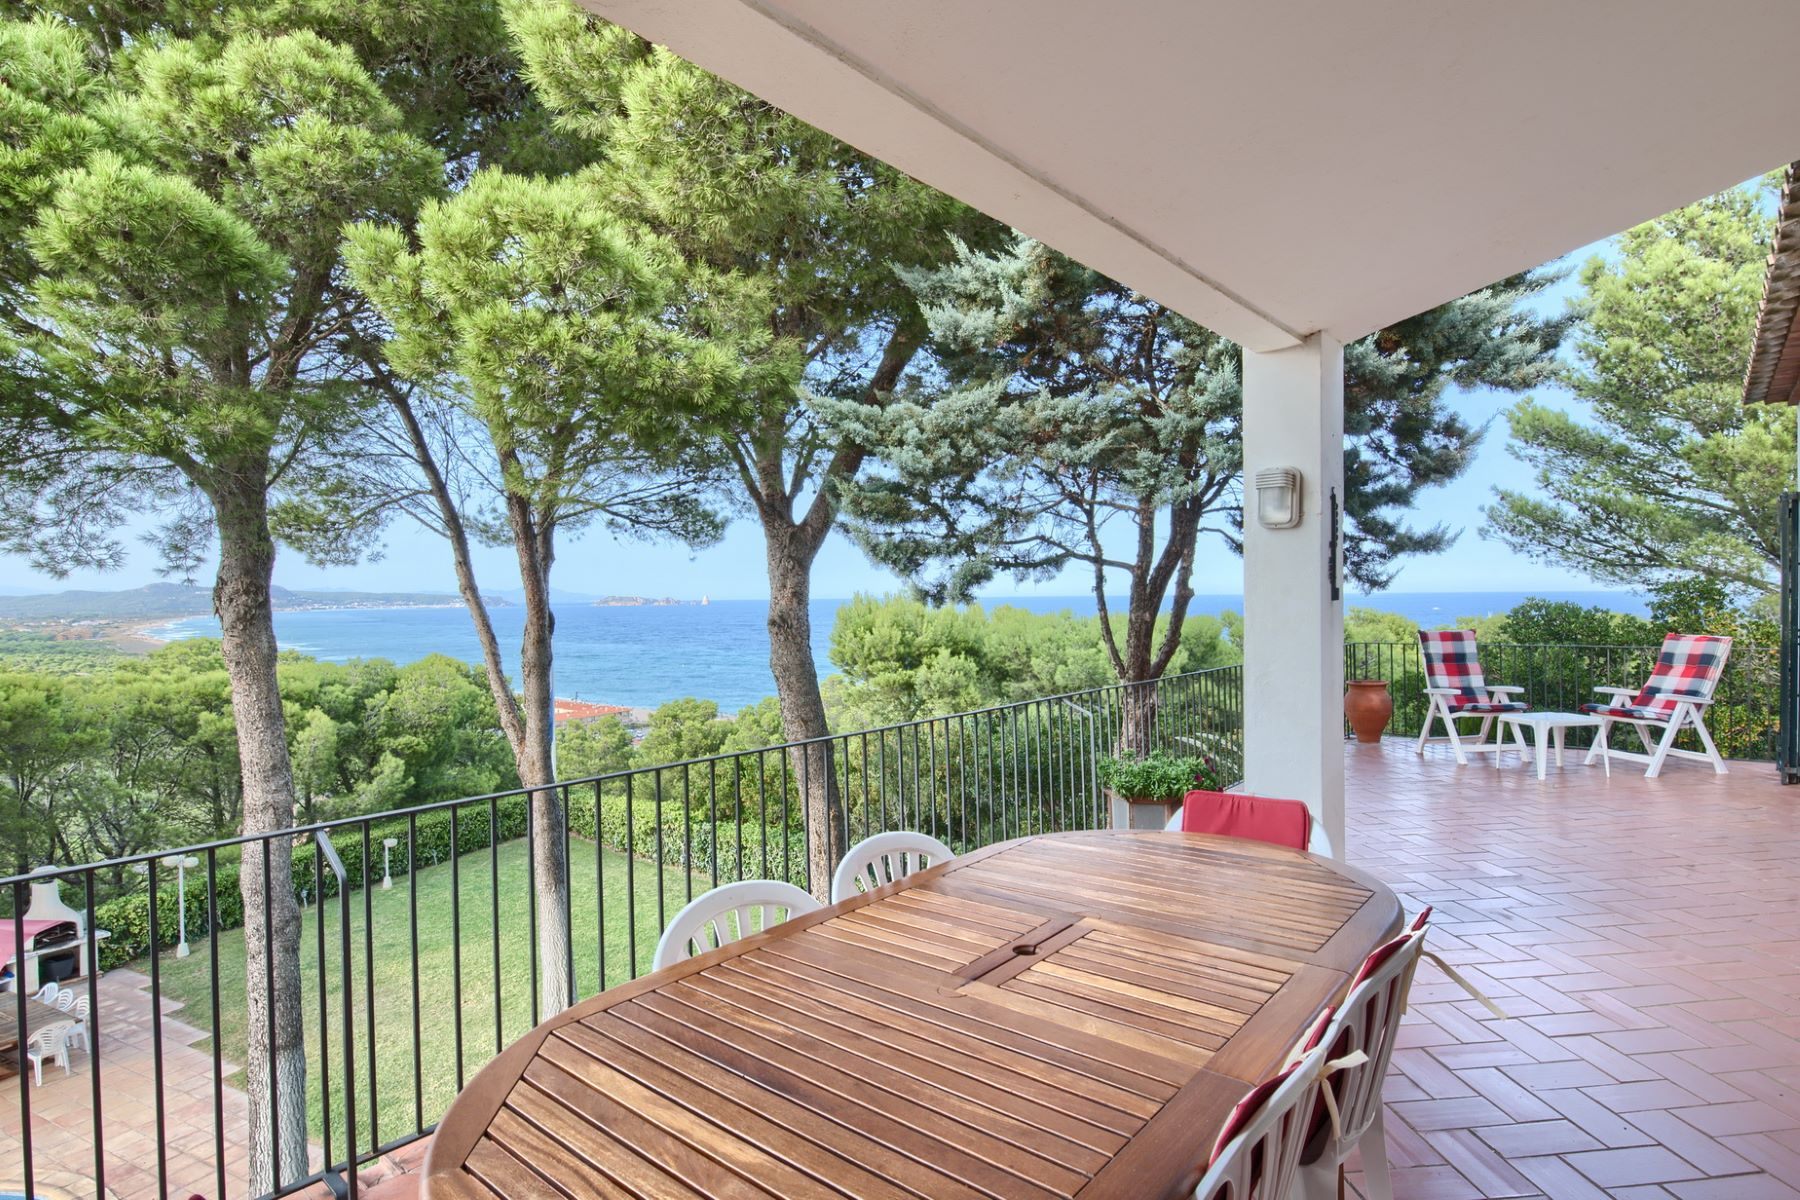 独户住宅 为 销售 在 Beautiful Mediterranean house overlooking the sea in the area of Sa Punta, S ... 贝吉尔, 科斯塔布拉瓦, 17255 西班牙